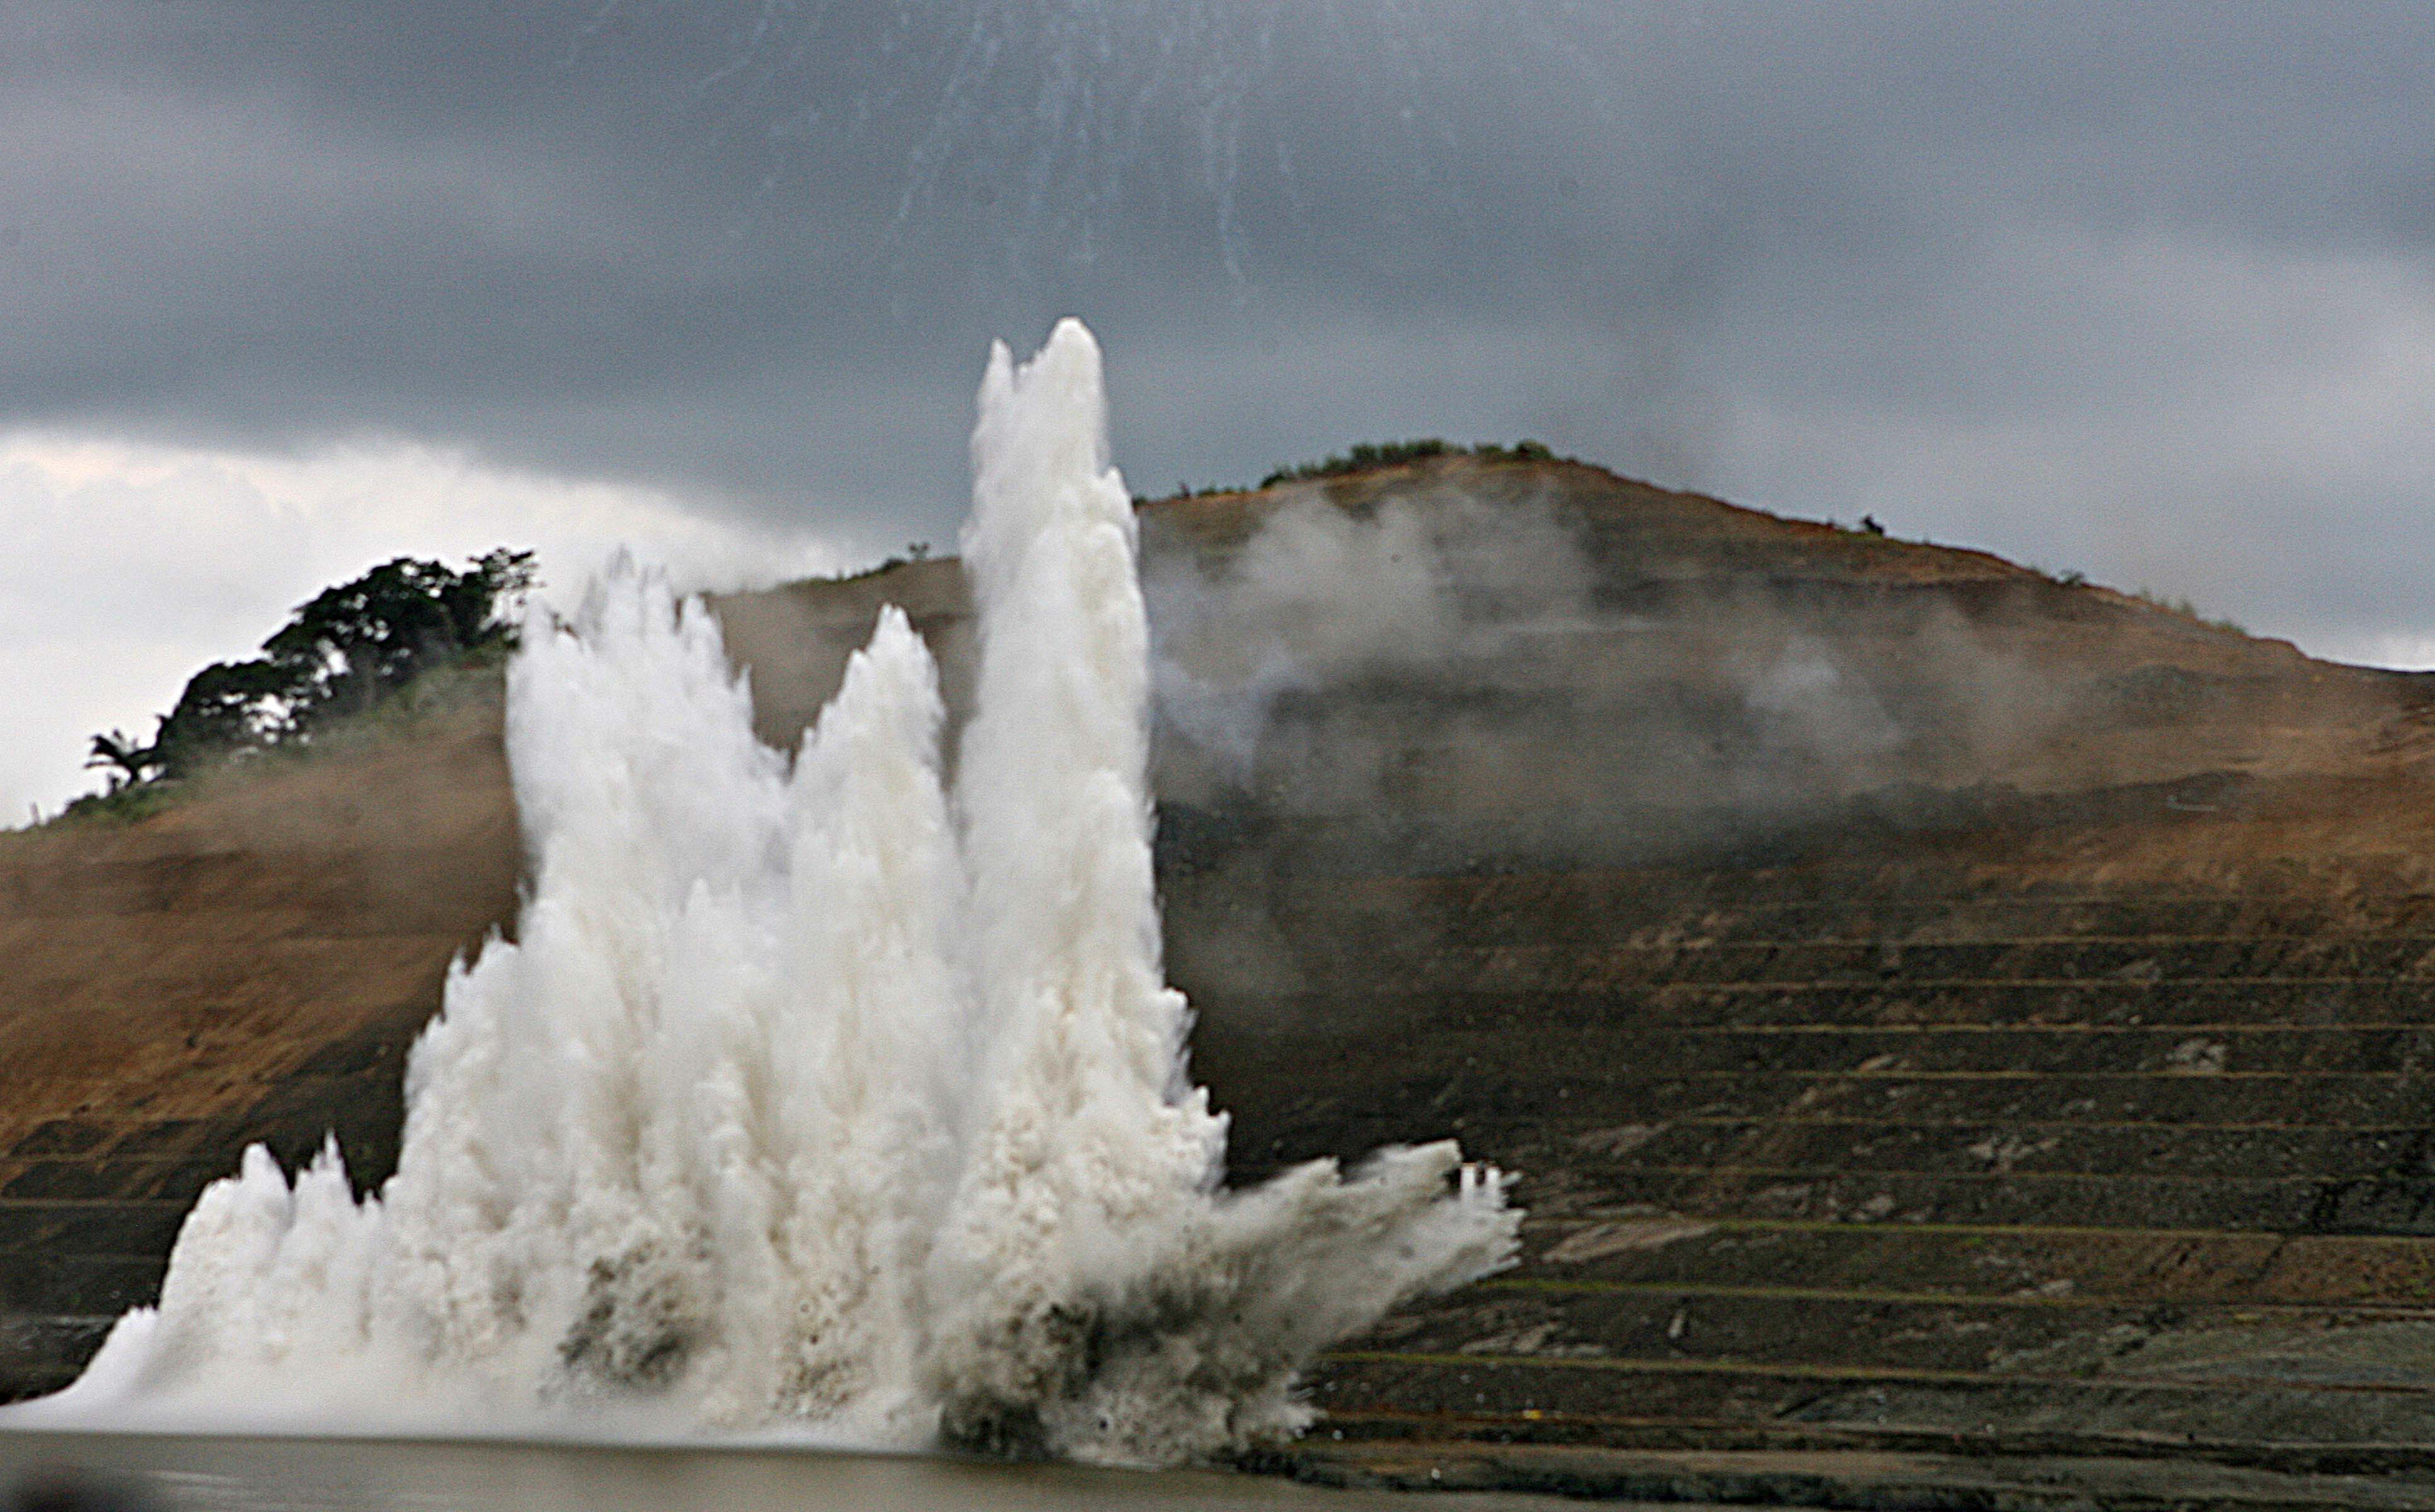 A controlled explosion sends water into the air in the Panama Canal during a Sept. 3, 2007 event celebrating the 30th anniversary of the 1977 treaty signed by then-President Jimmy Carter and Panamanian leader Omar Torrijos to transfer possession the canal to Panama at midnight Dec. 31, 1999. Photo by Susana Gonzalez/Bloomberg via Getty Images